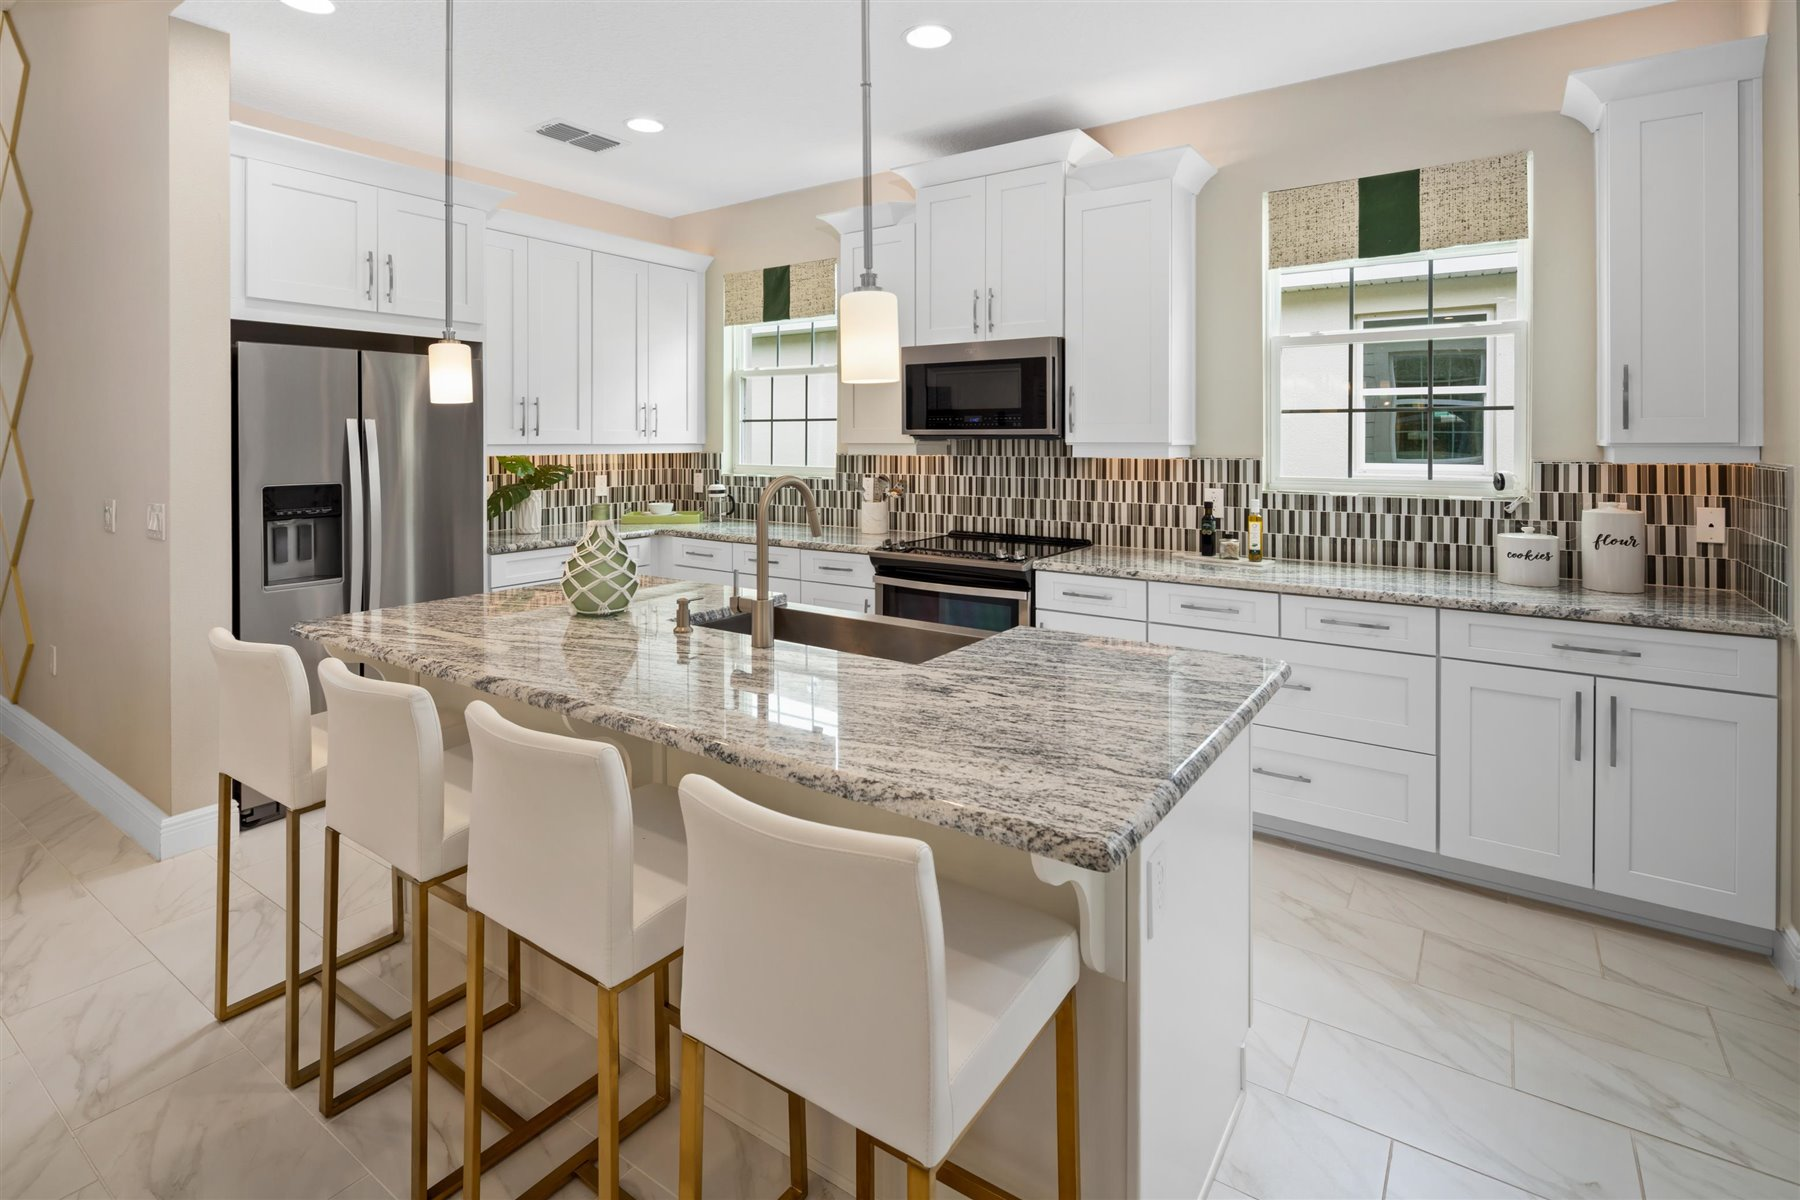 Tohoqua Kitchen in Kissimmee Florida by Mattamy Homes